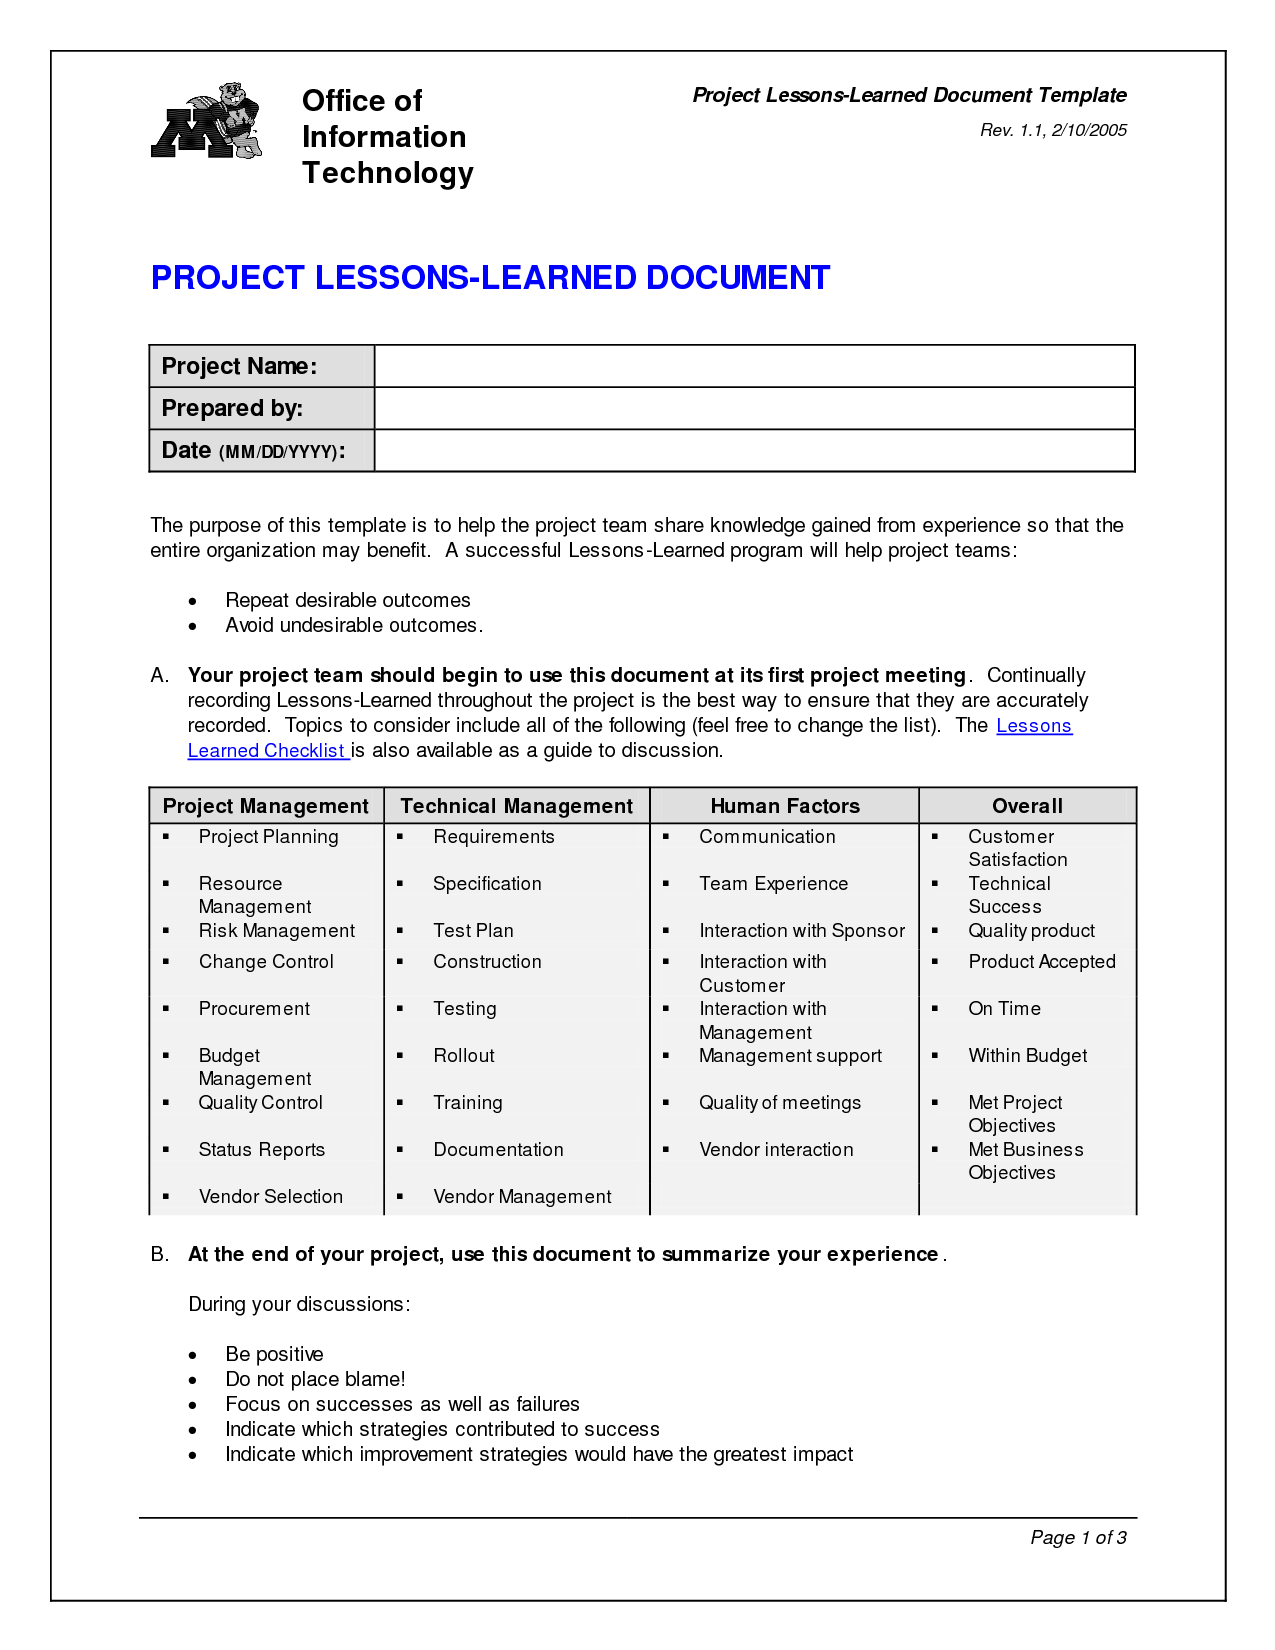 Project lessons learned quotes quotesgram for Lessons learnt project management template